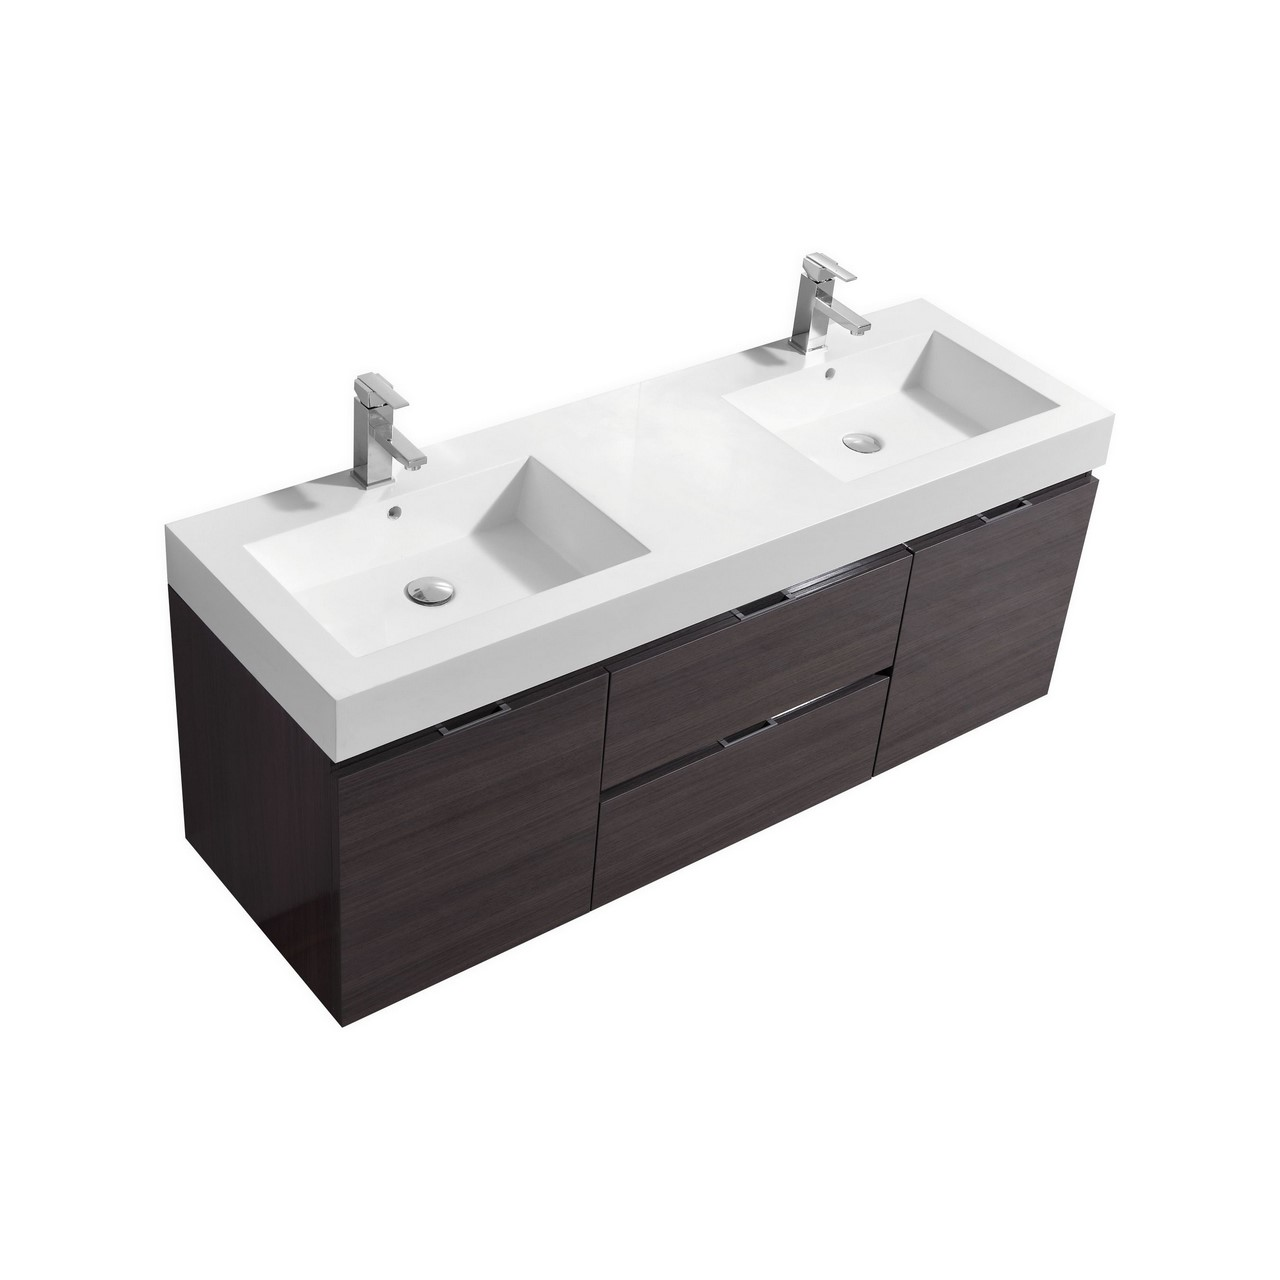 bliss 60 high gloss gray oak wall mount double sink vanity. Black Bedroom Furniture Sets. Home Design Ideas